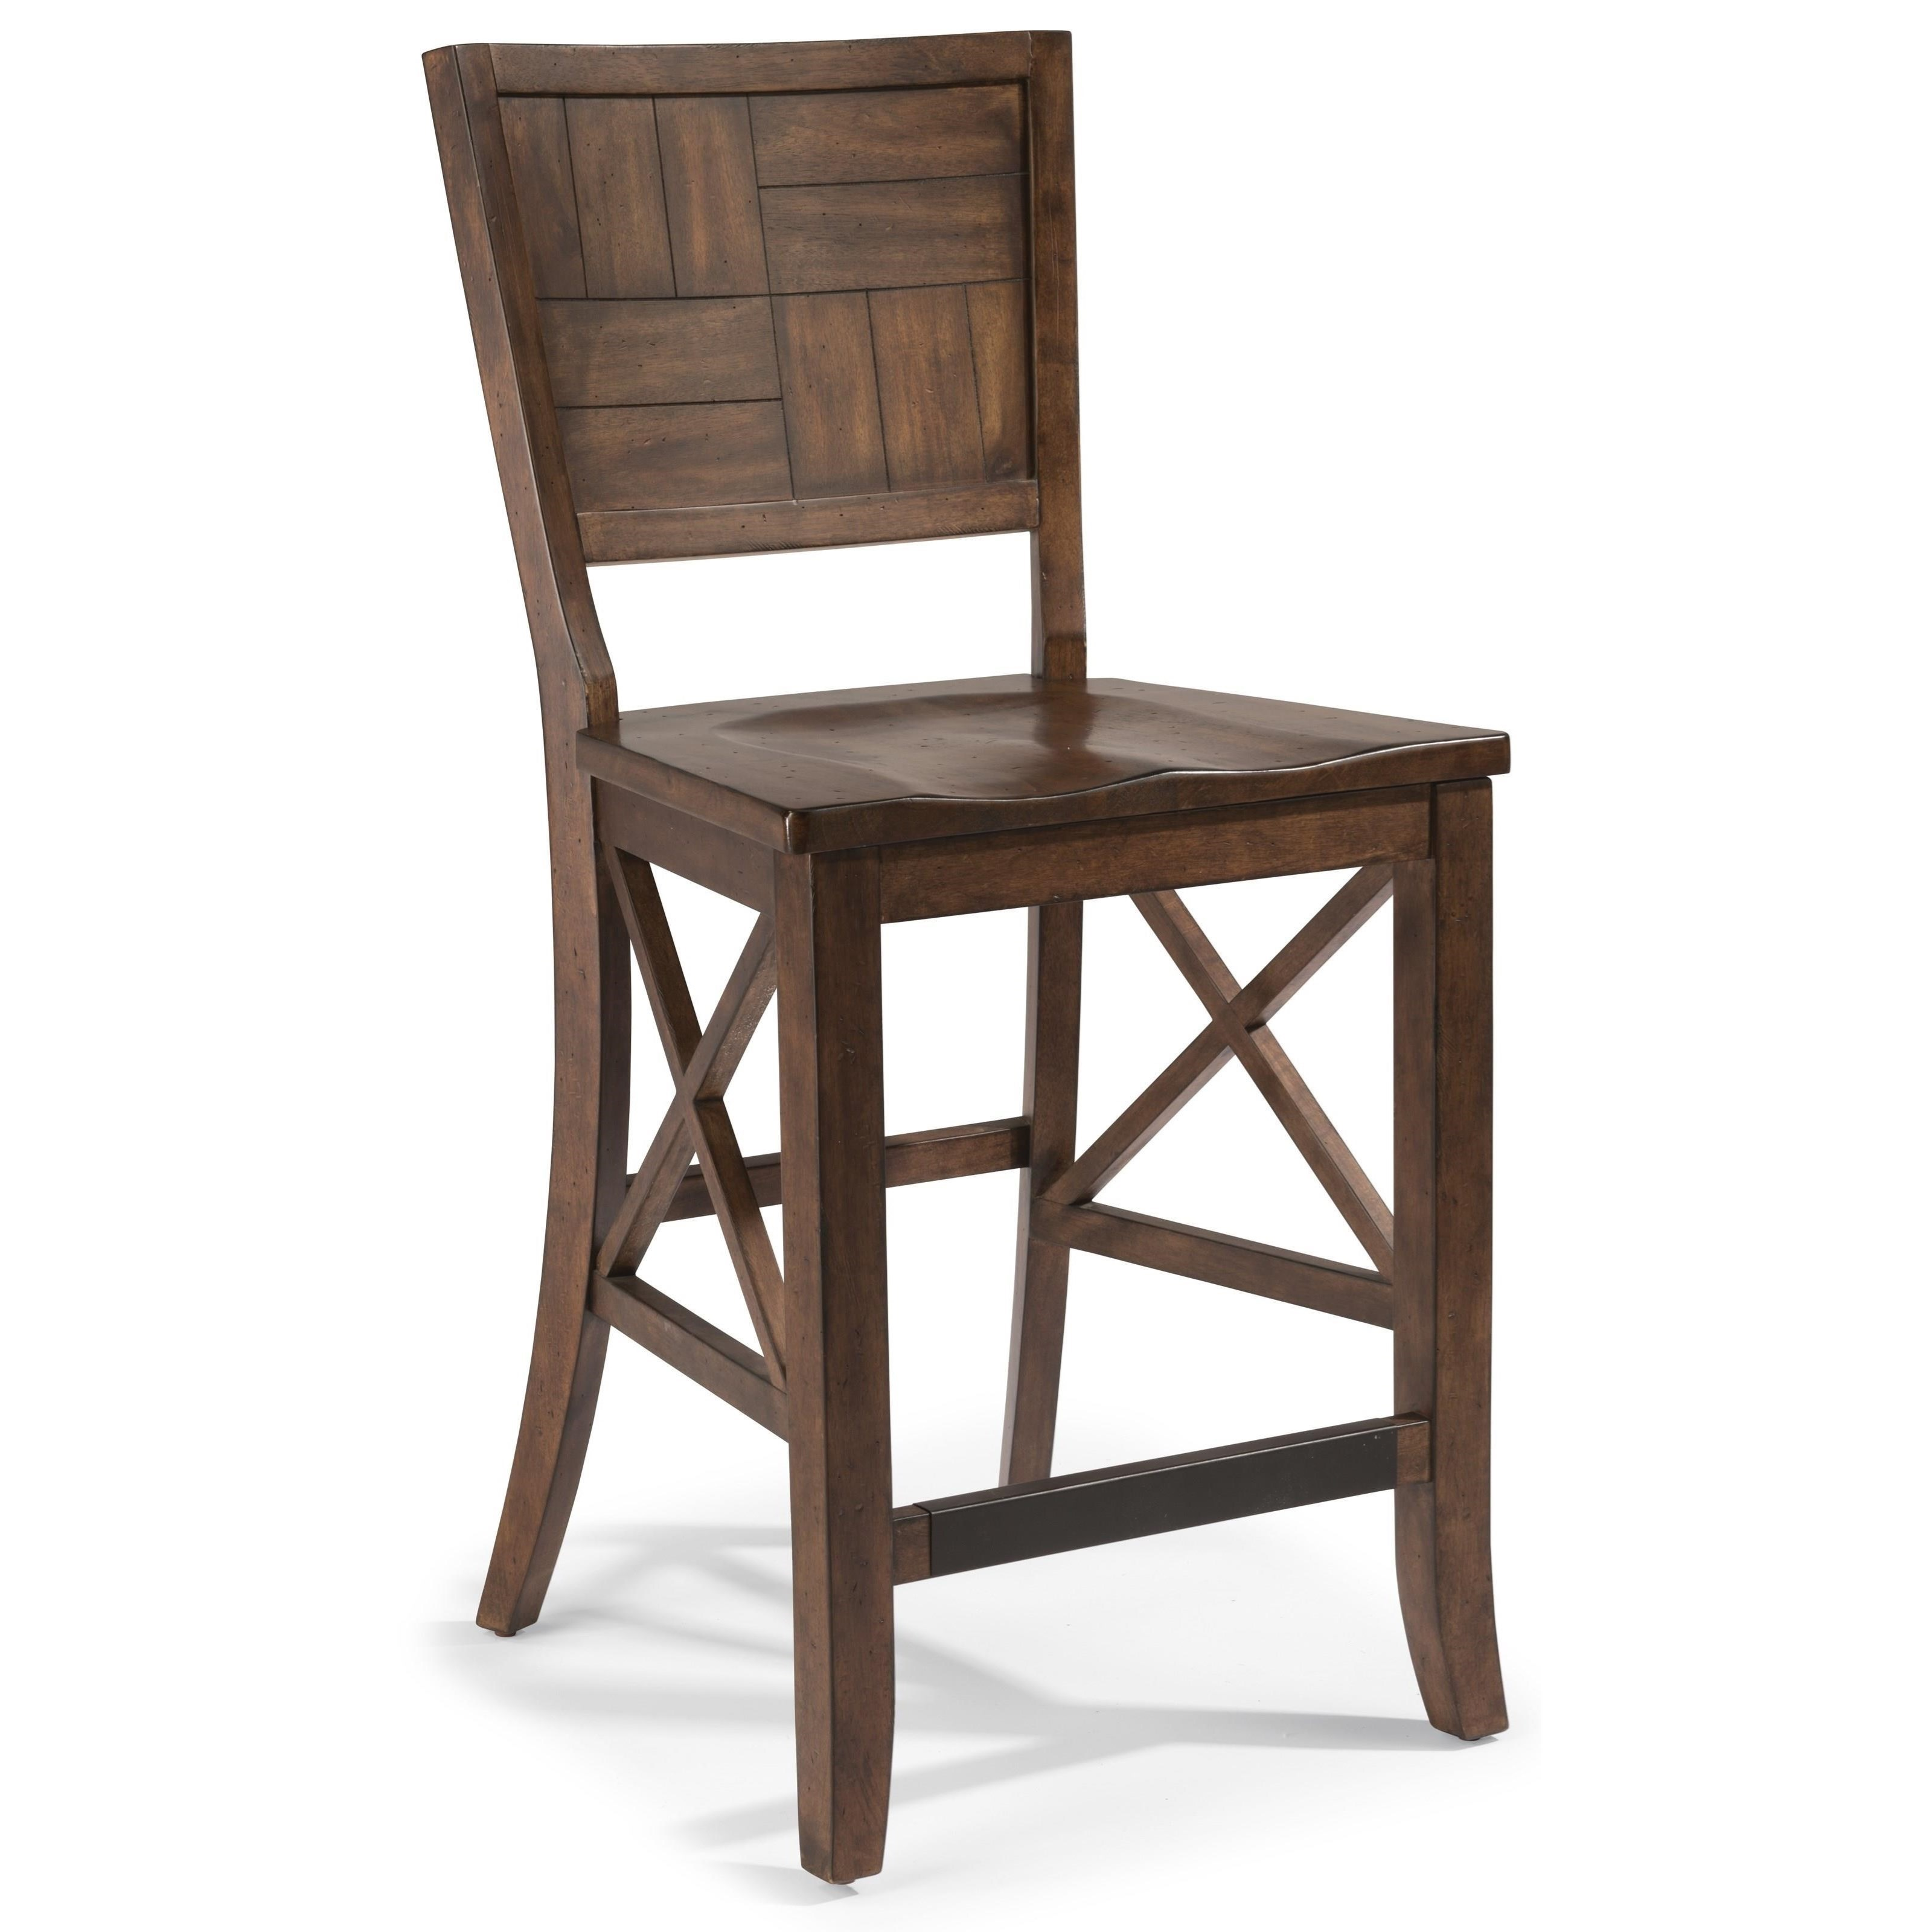 Flexsteel Wynwood Collection Carpenter Counter Chair - Item Number: W6722-846